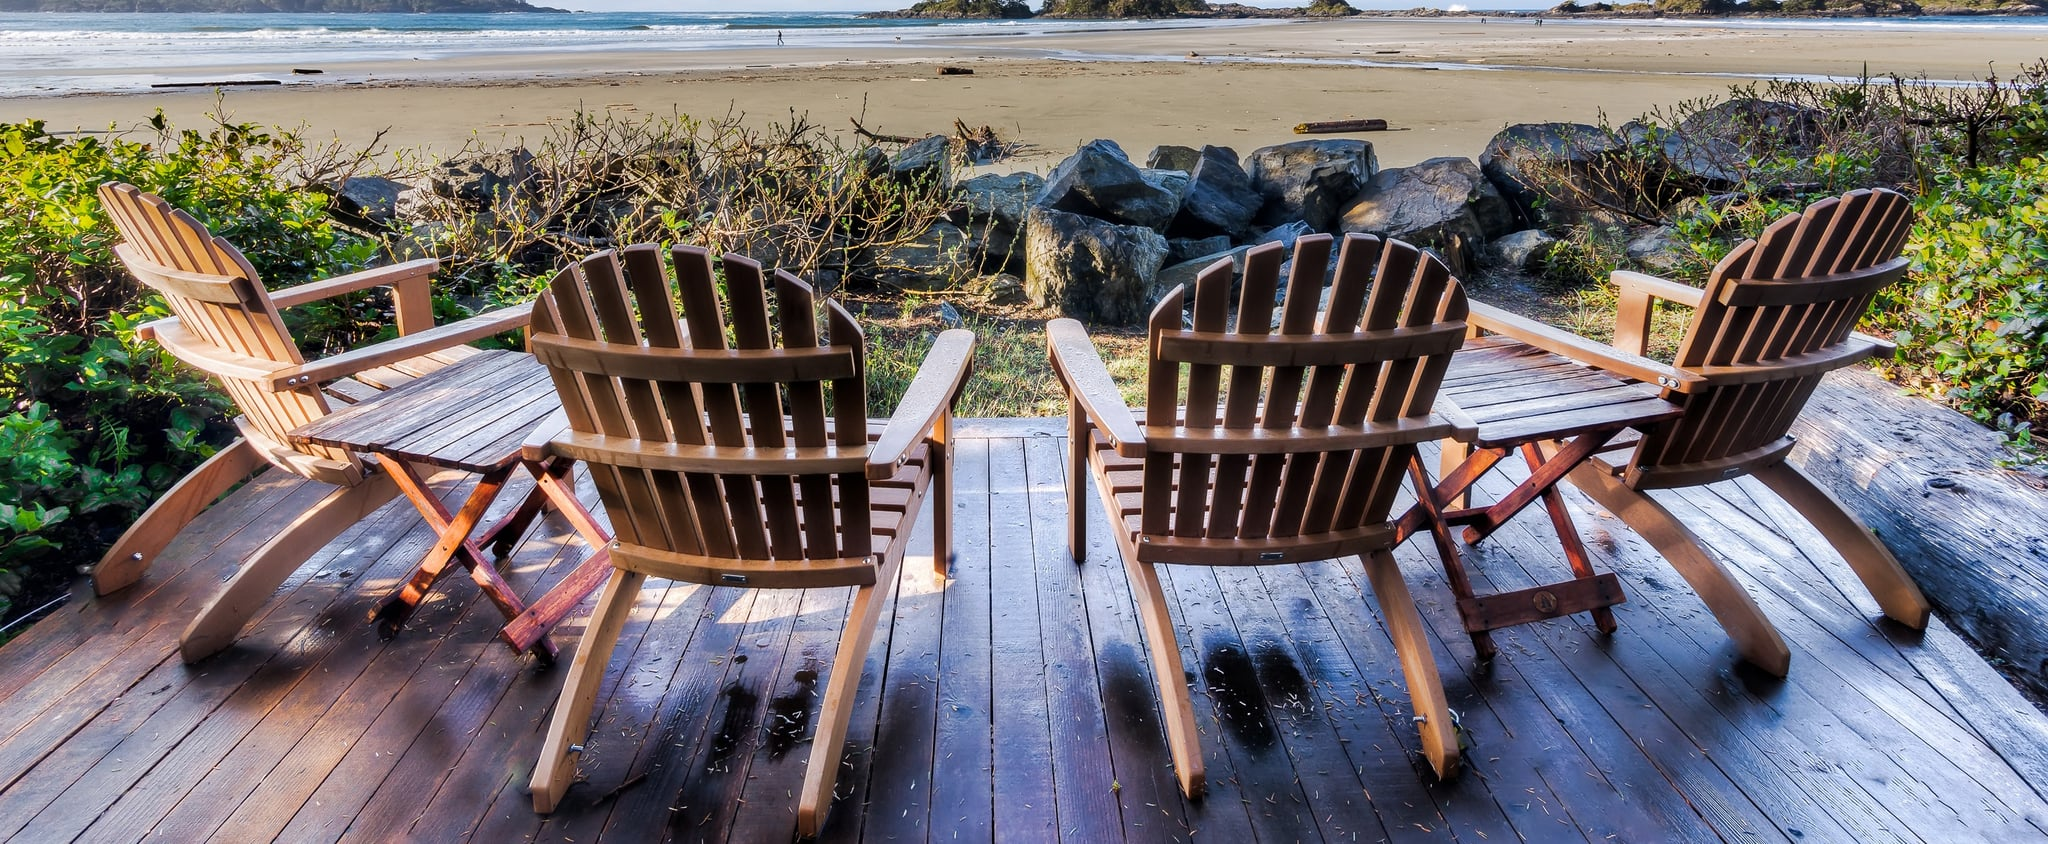 Best Adirondack Chairs From Home Depot